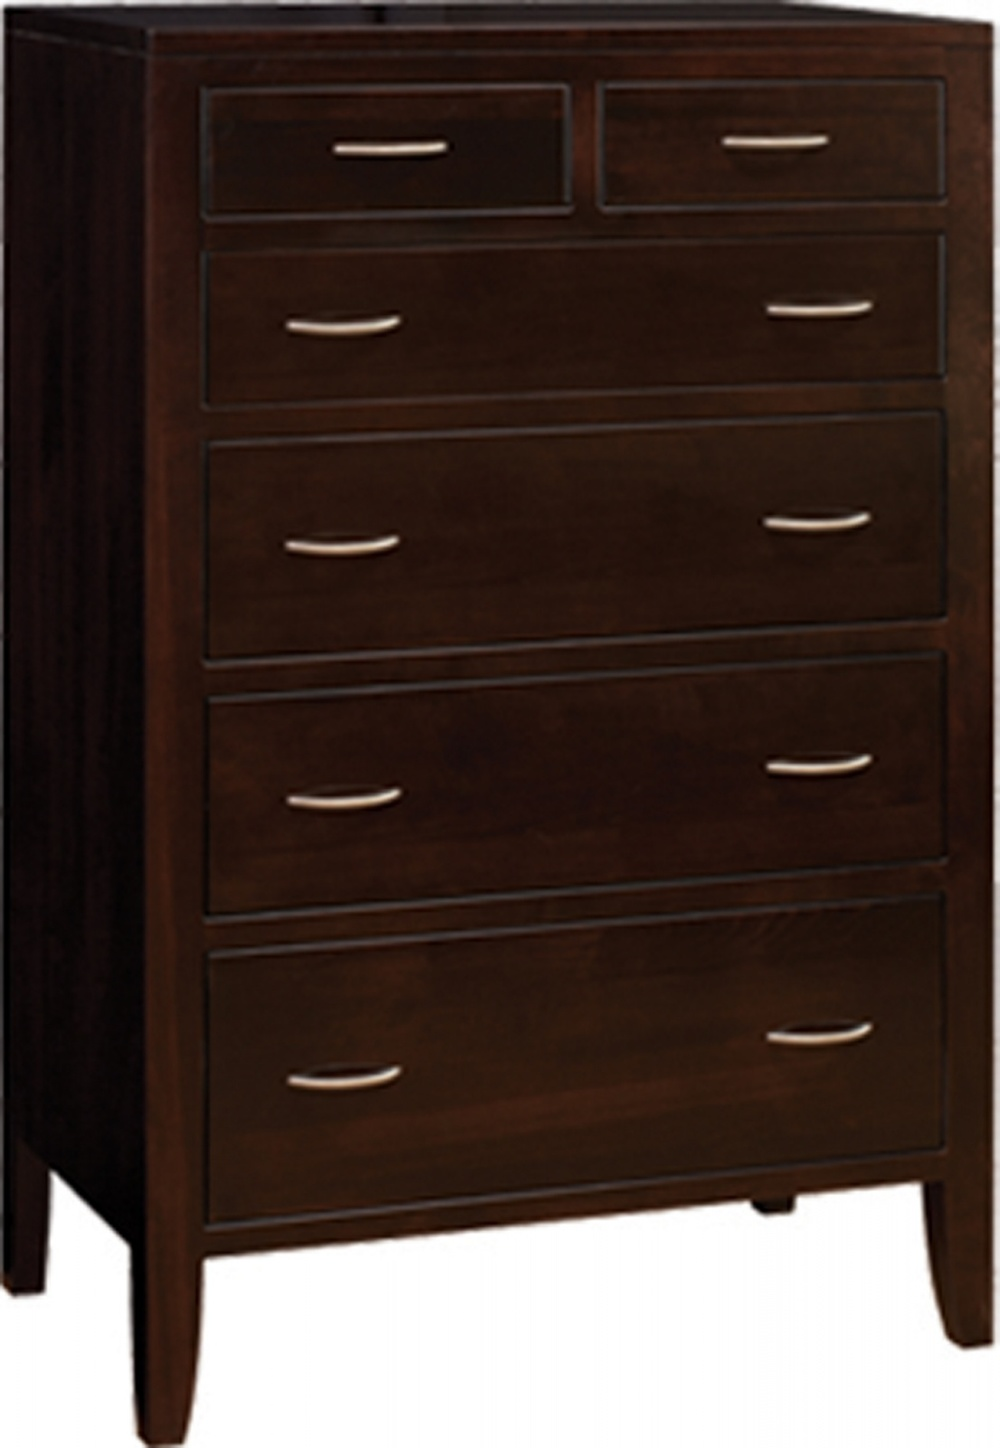 BR-1350 Tall Chest.jpg